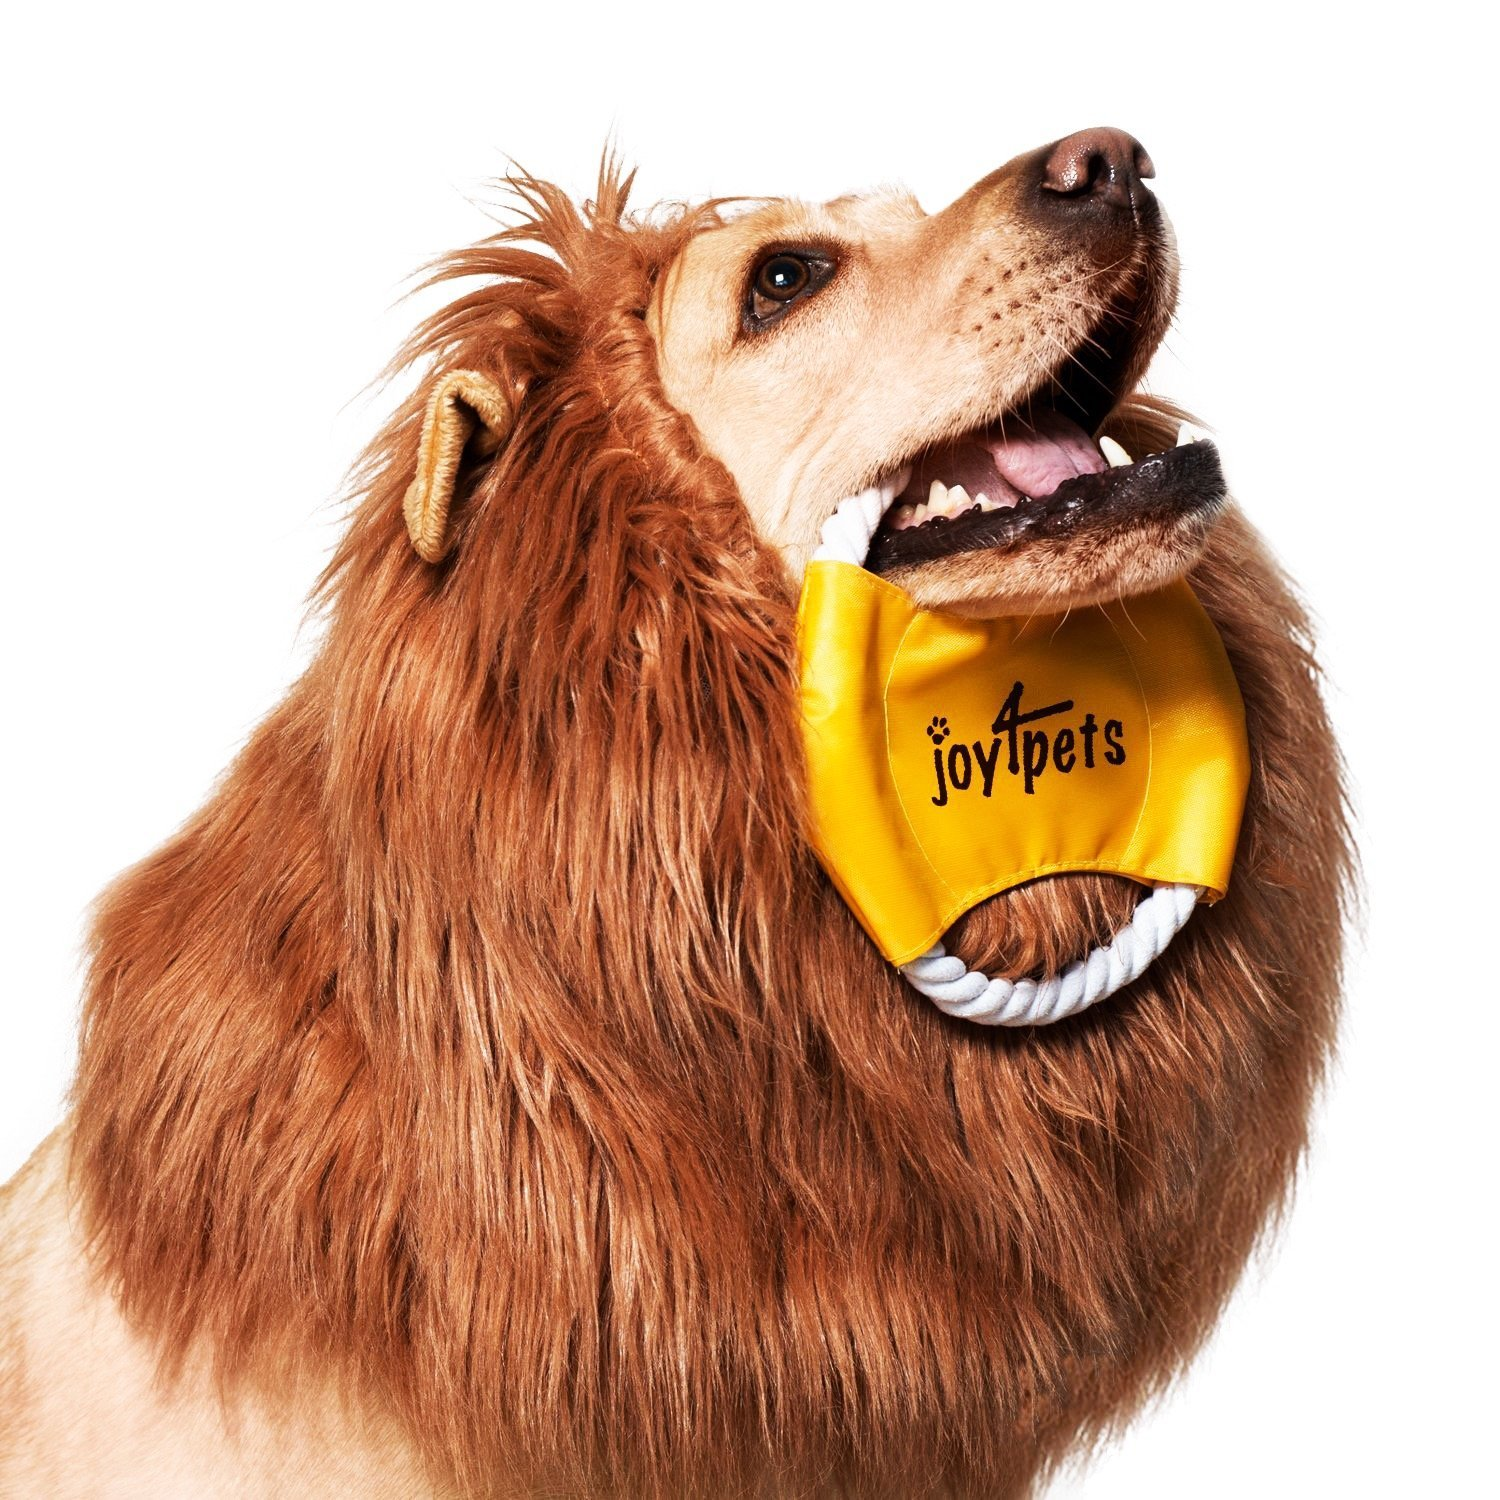 Lion Mane for Dog with Frisbee - Premium Quality, Realistic, Hilarious & Eye Catching Dog Lion Mane - Dog Costume with Ears - Comfortable Lion Wig for Medium and Large Dogs - Perfect Dog Gift by Joy4Pets (Image #1)